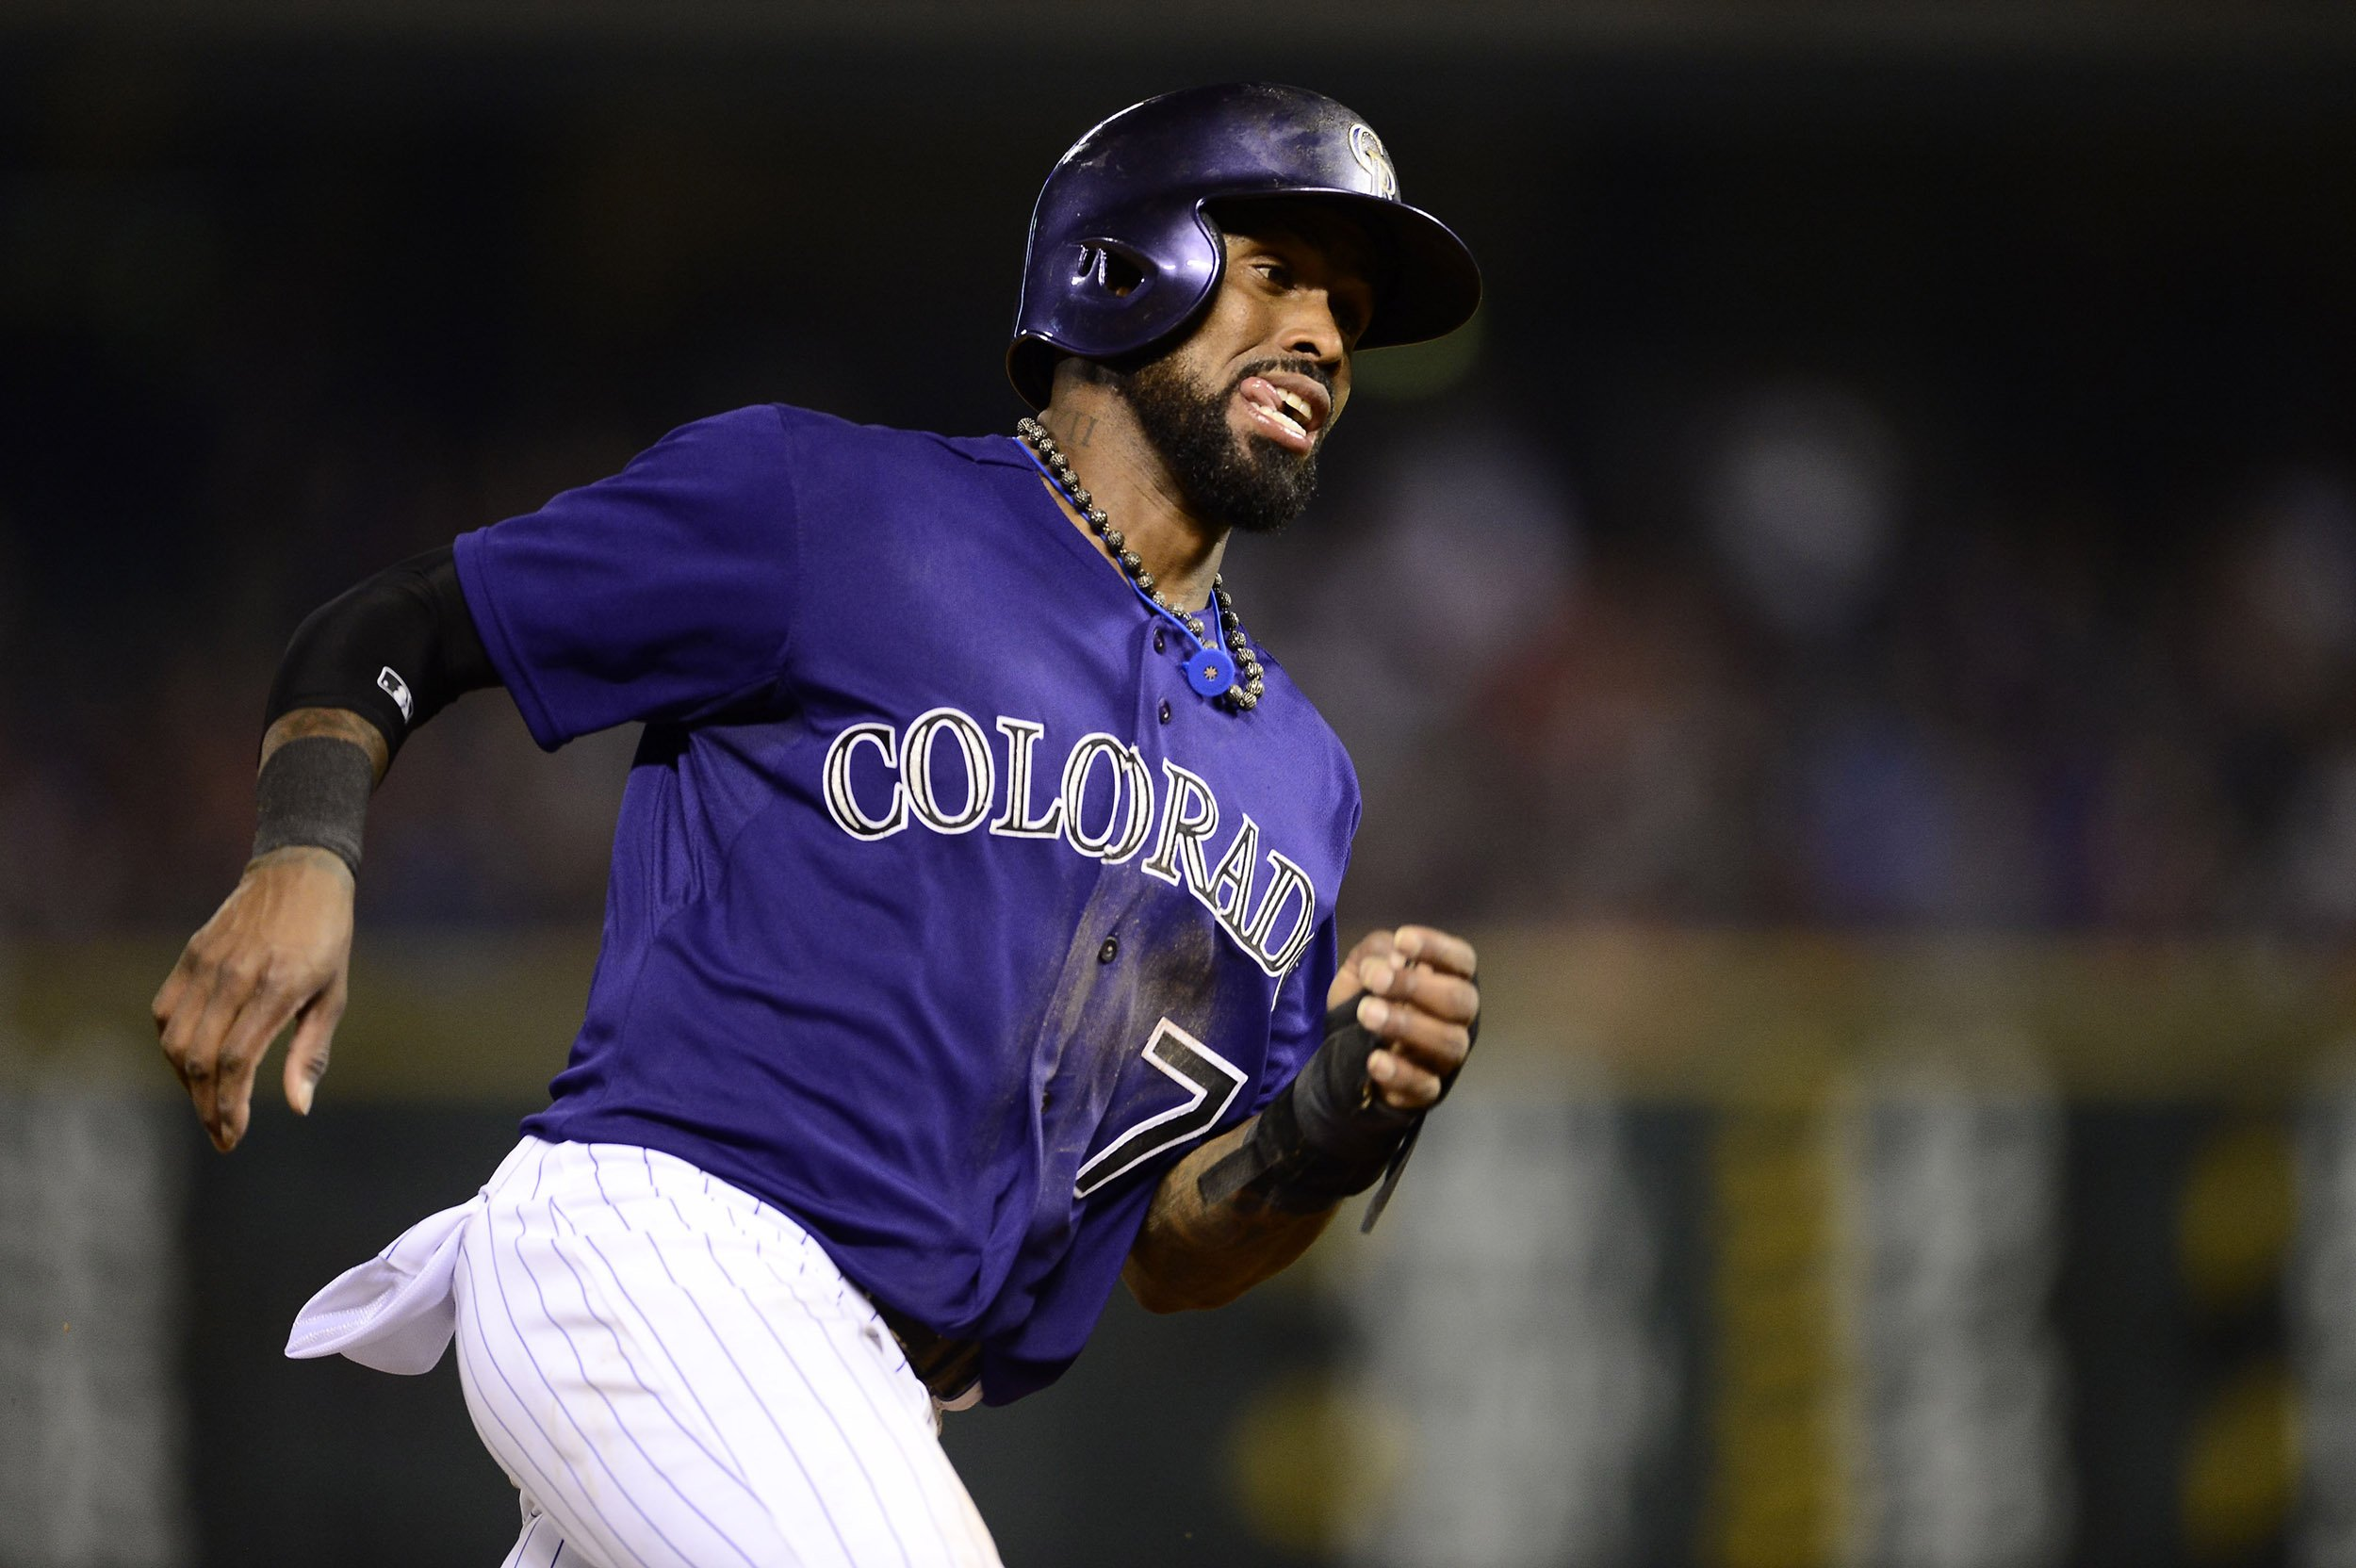 Colorado Rockies Shortstop Jose Reyes Arrested on Domestic Abuse ...